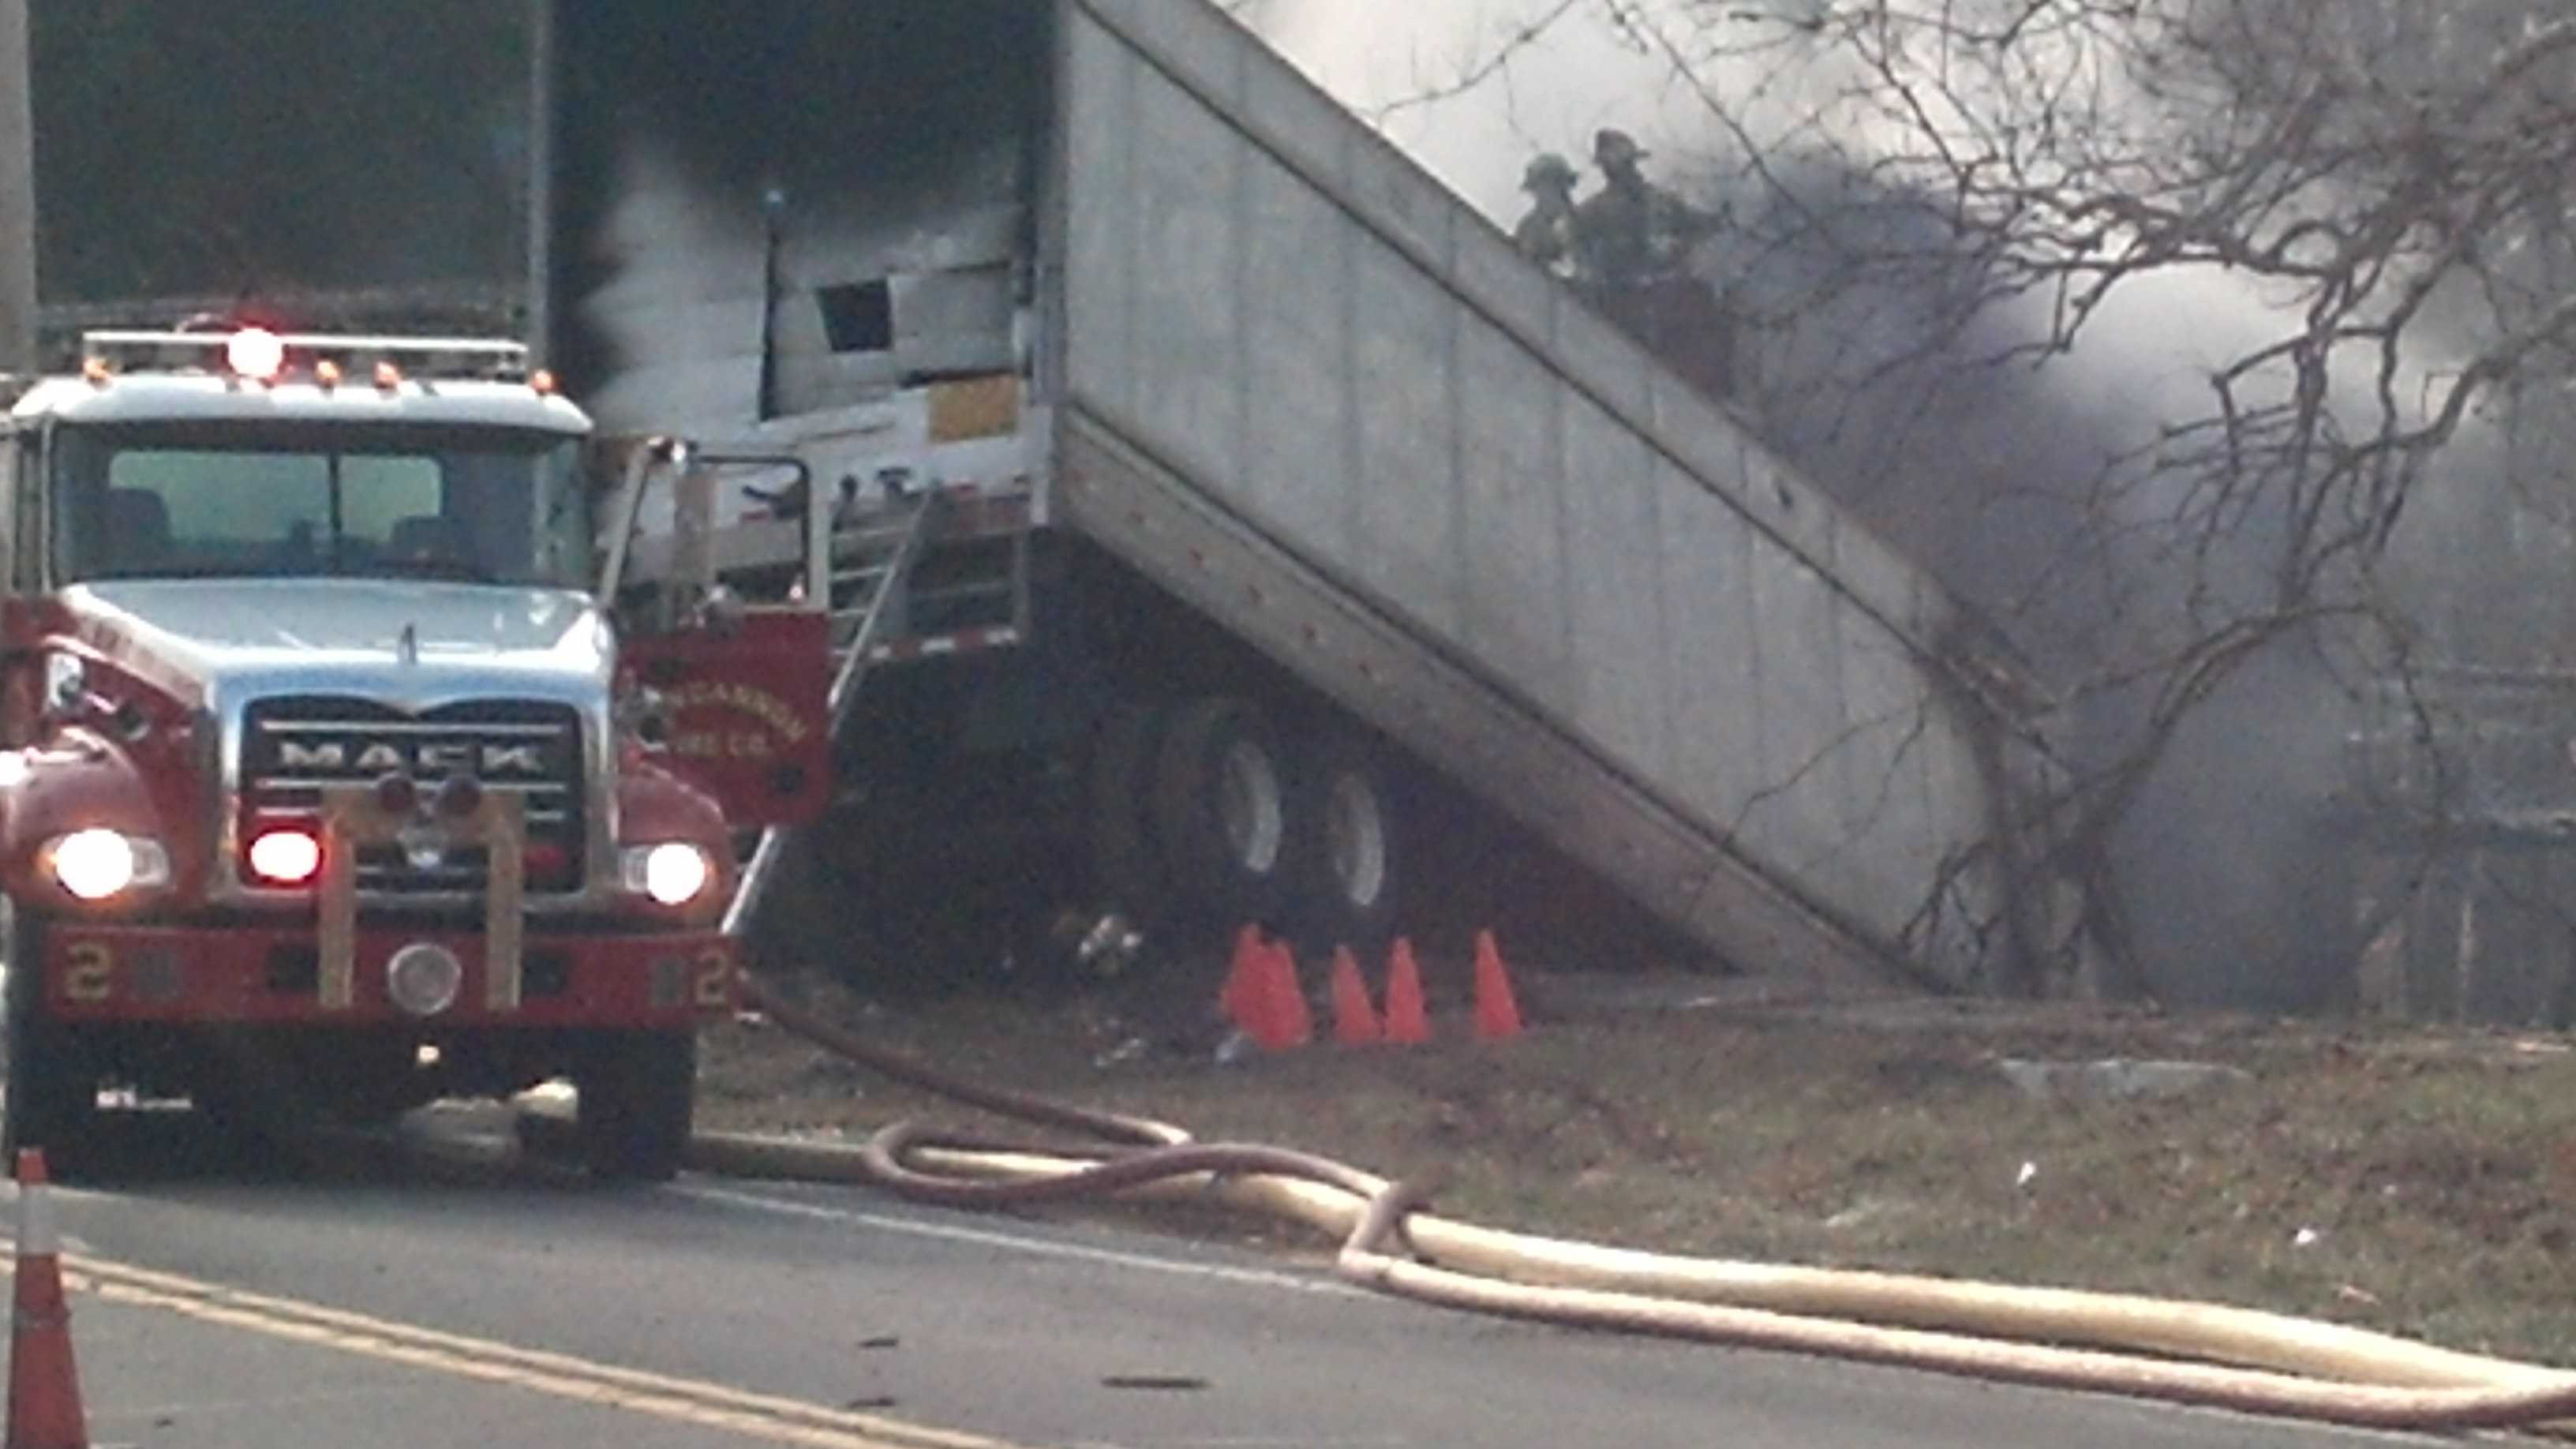 The truck caught fire and the house was destroyed. The accident happened in Reed Township off Route 147 around 1 p.m.